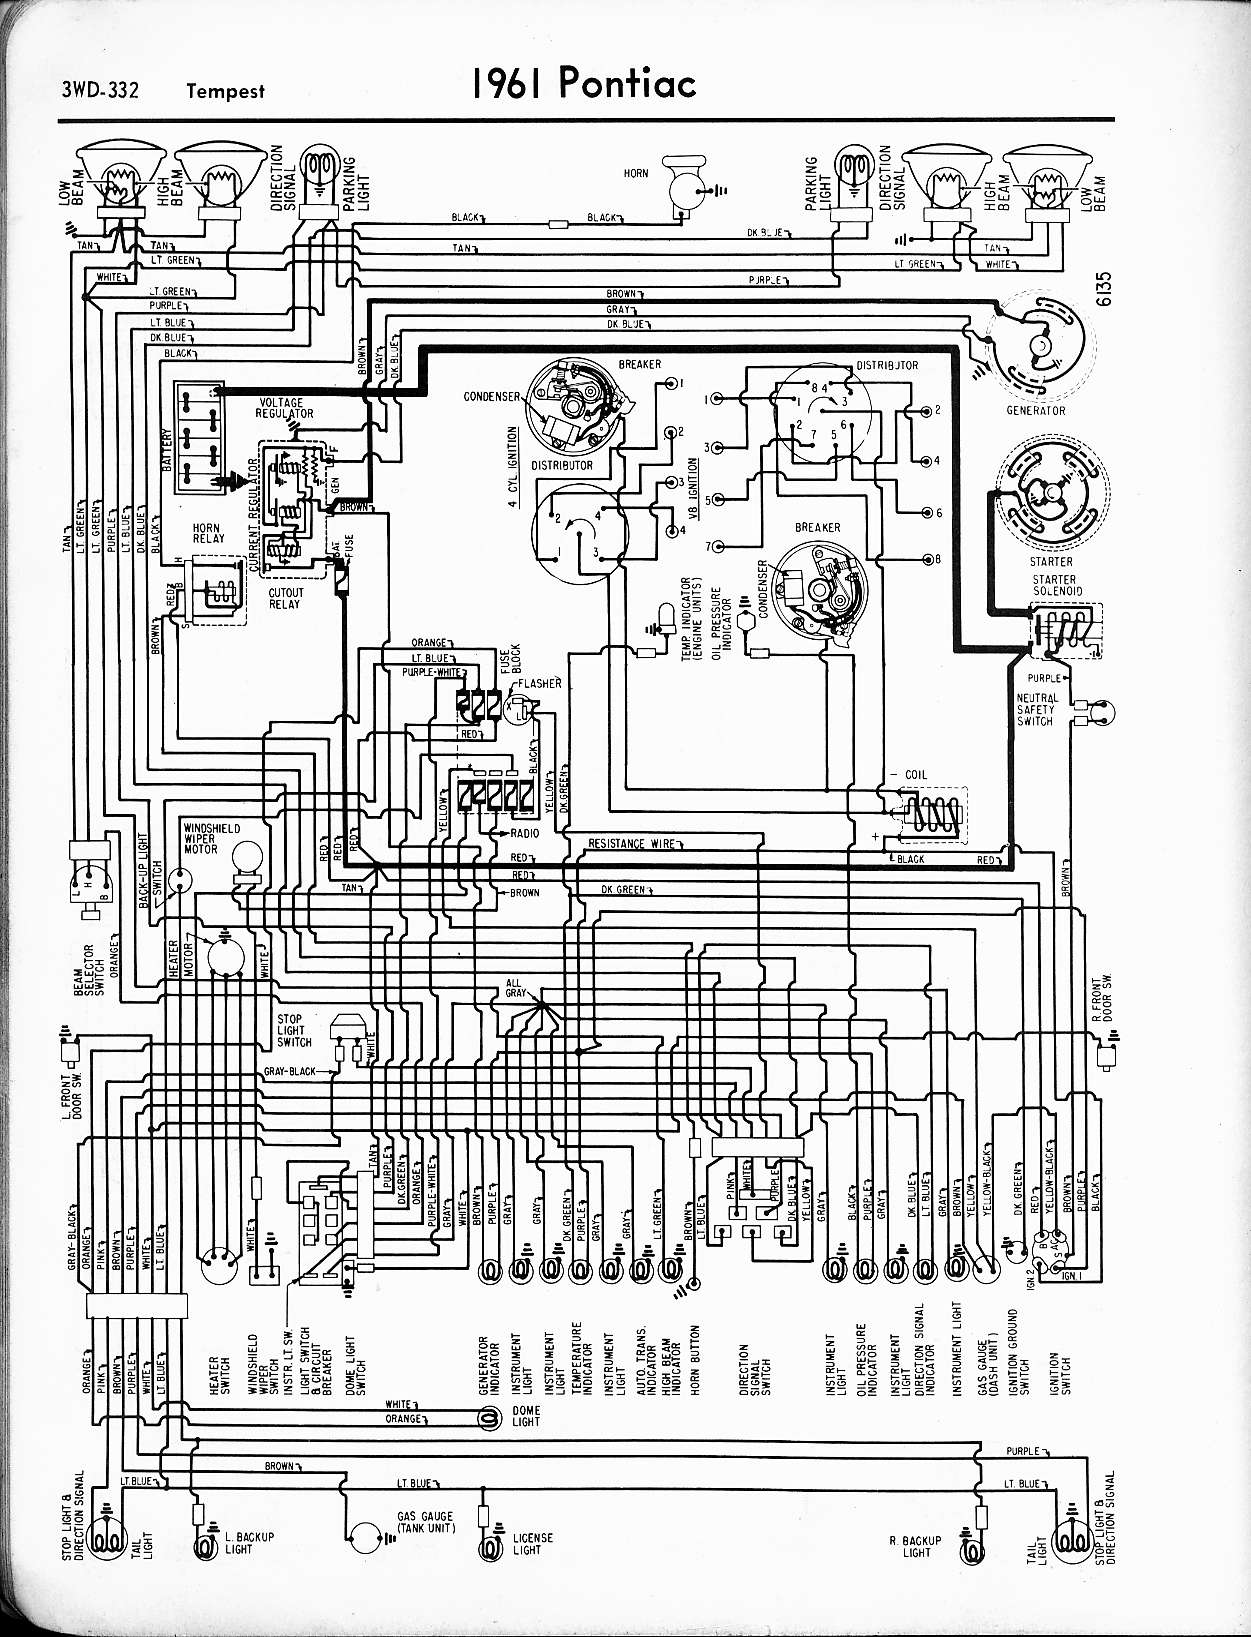 wallace racing wiring diagrams rh wallaceracing com 1968 gto dash wiring  diagram 68 gto ignition switch